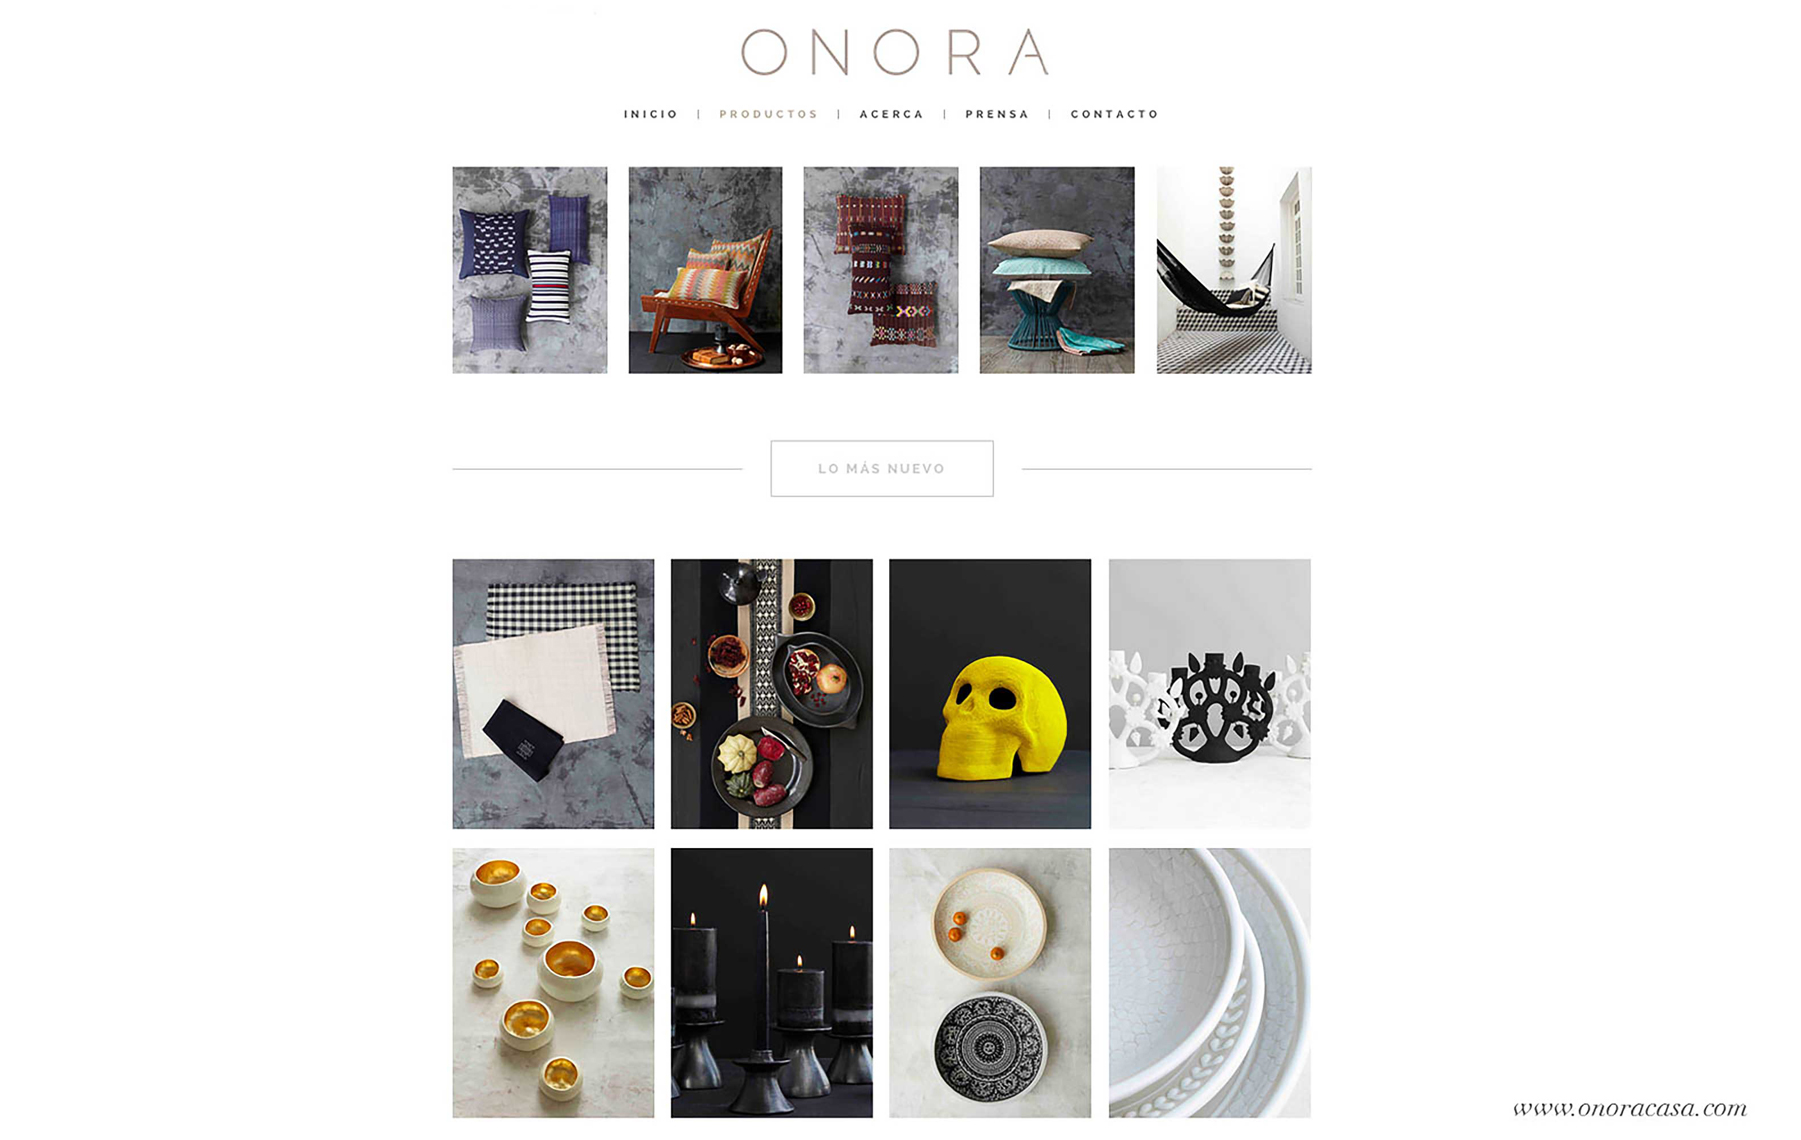 onora_2